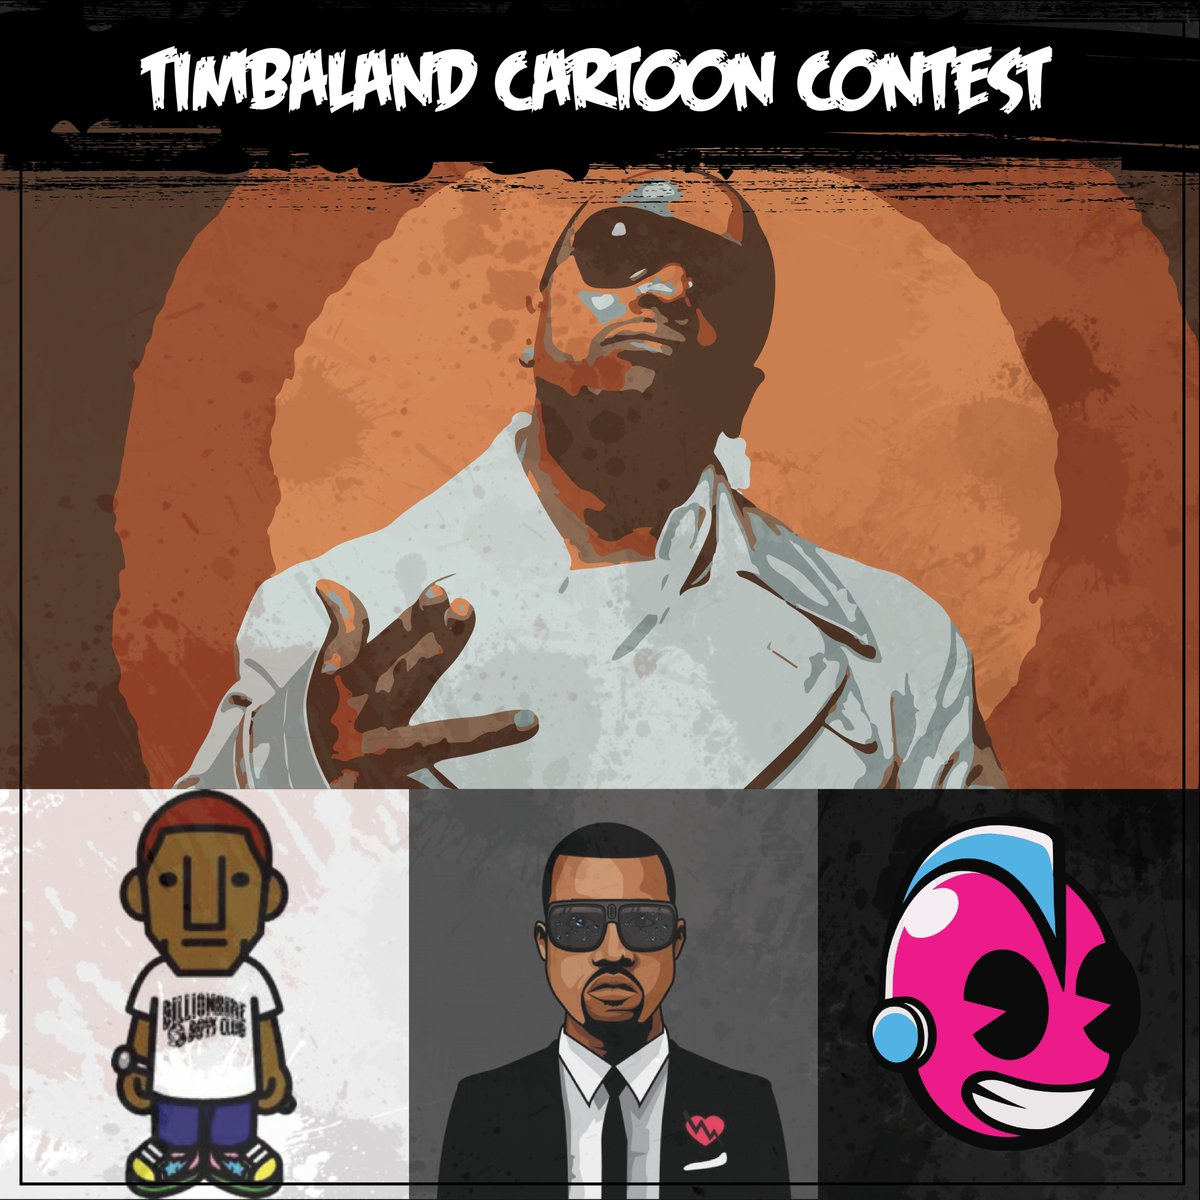 Timbaland On Twitter Can You Turn Me Into A Cartoon Character Create A 2d Cartoon Caricature Of Me In Any Style